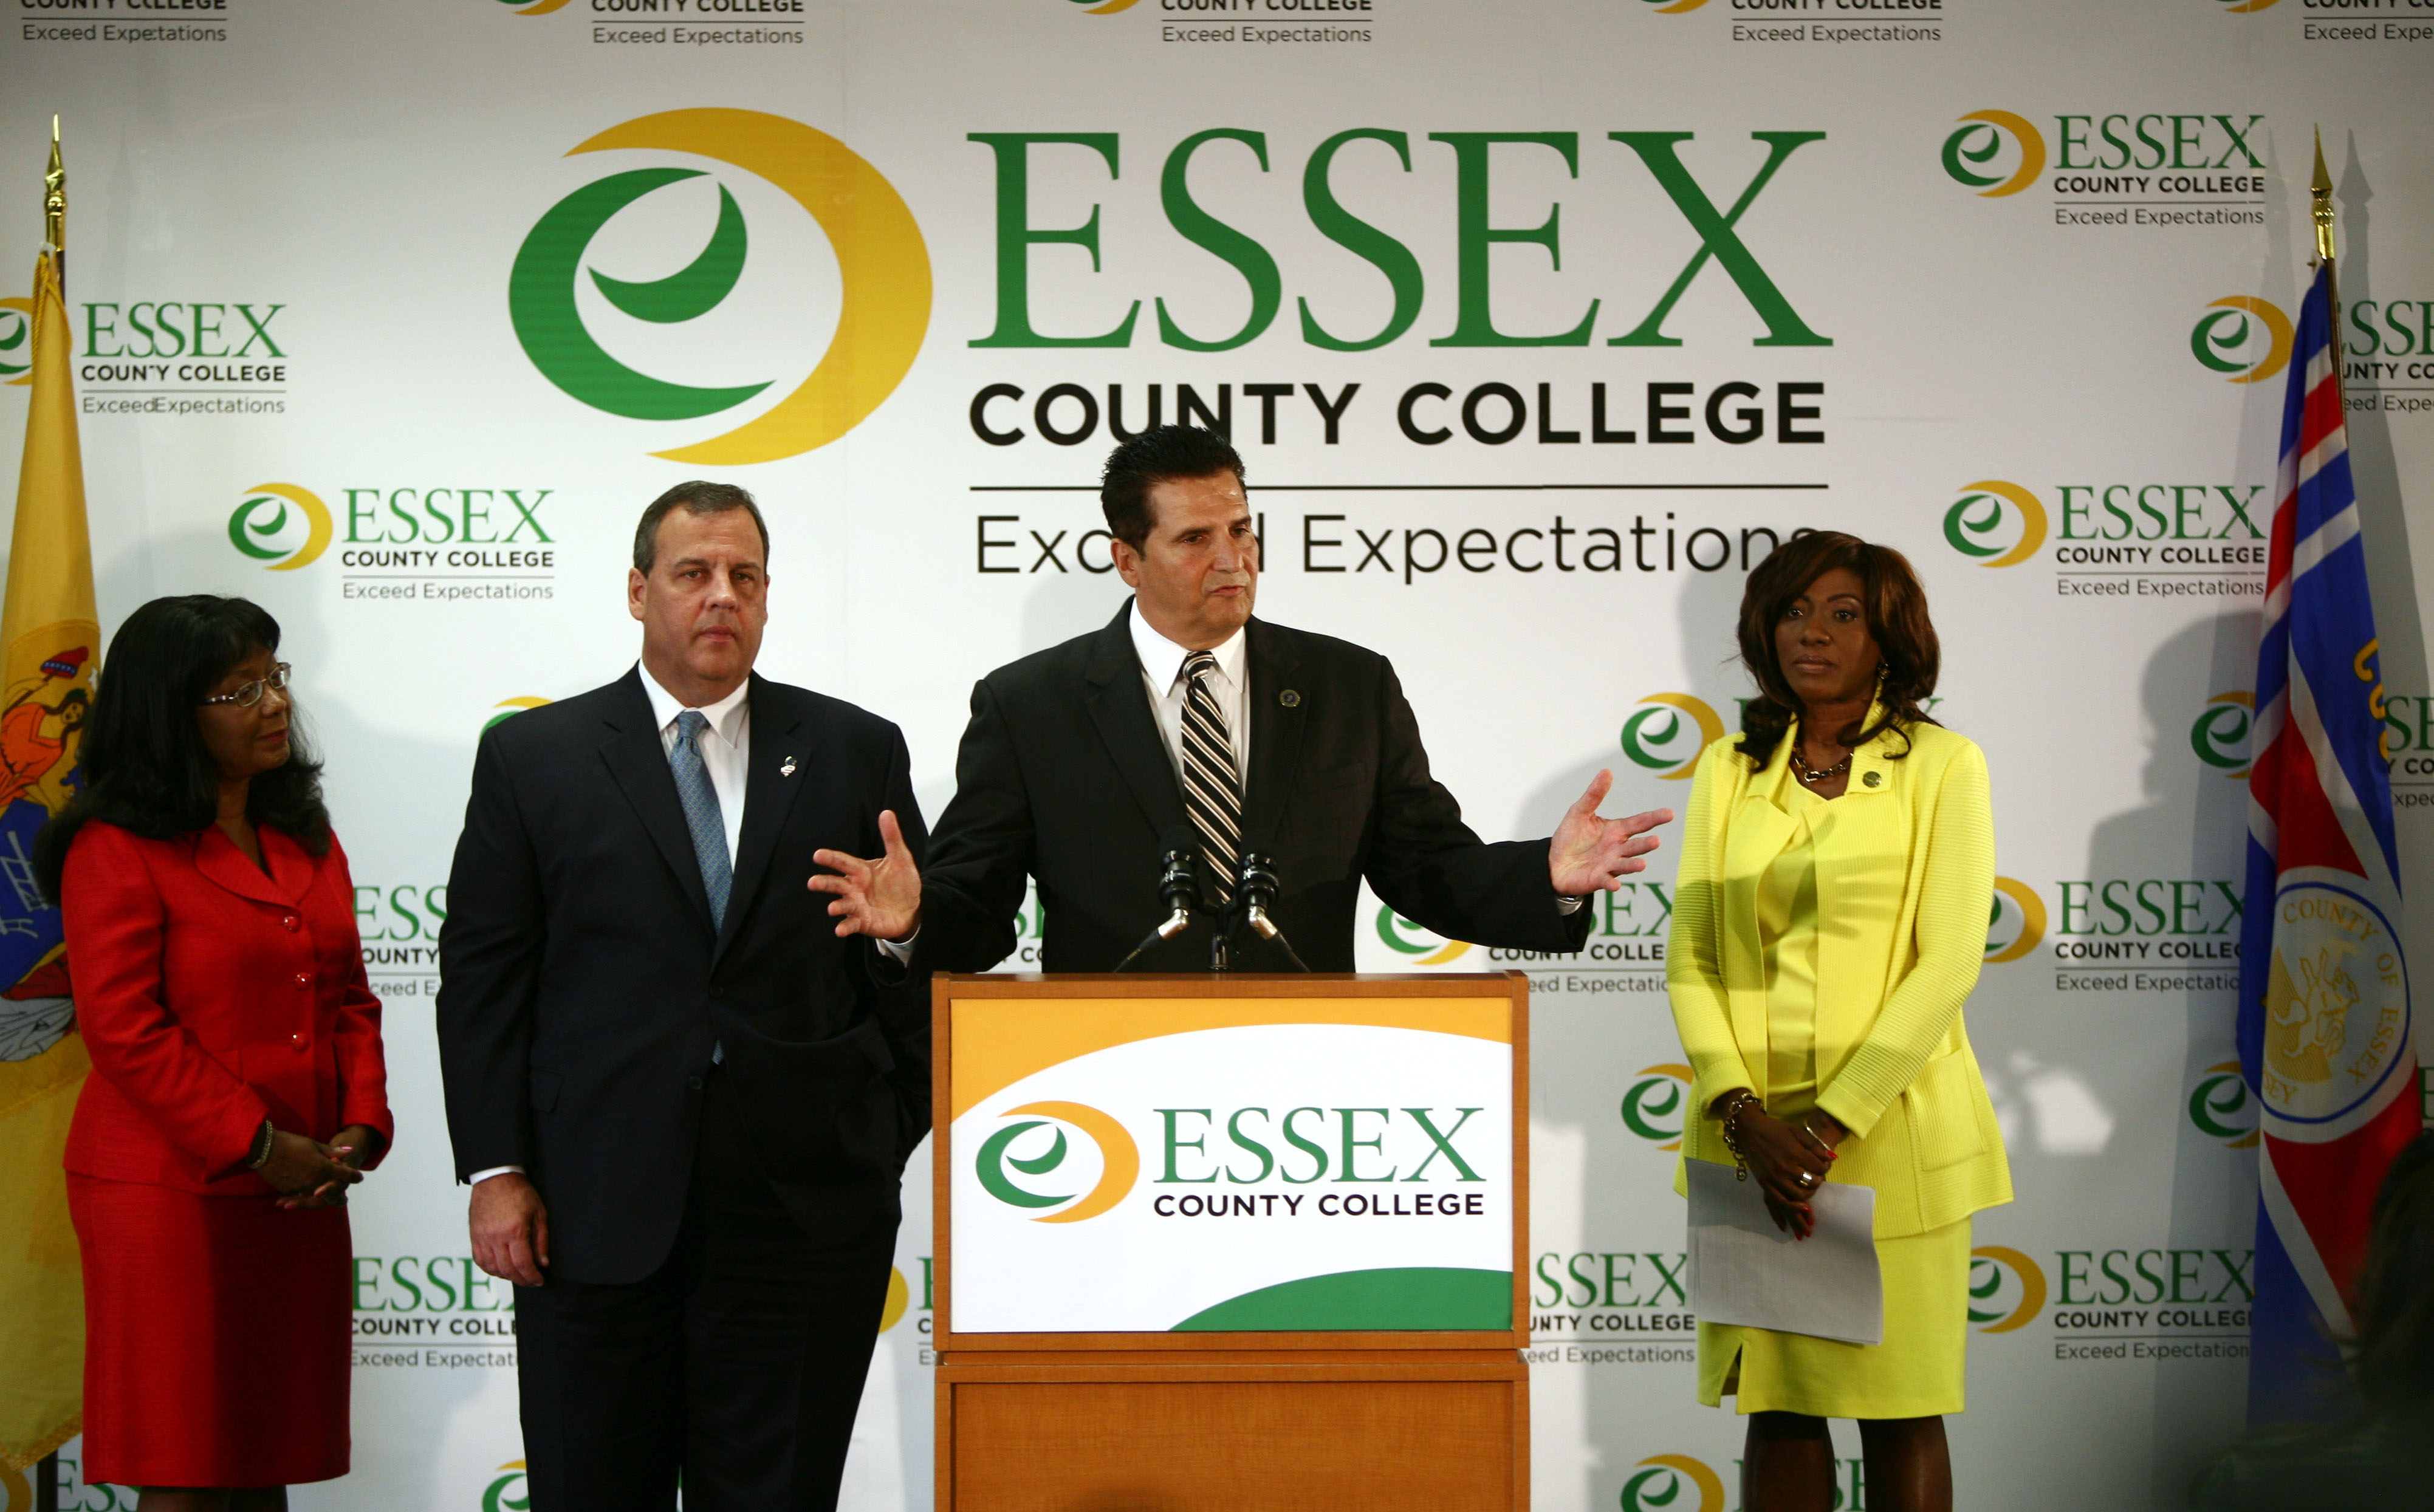 Governor Chris Christie, Secretary of Higher Education Rochelle Hendricks, County Executive Joe DiVincenzo and Essex County College President Dr. Gale Gibson announce major library renovations at Essex County College in Newark, N.J. on Wednesday, June 11, 2014. (Governor's Office/Tim Larsen)